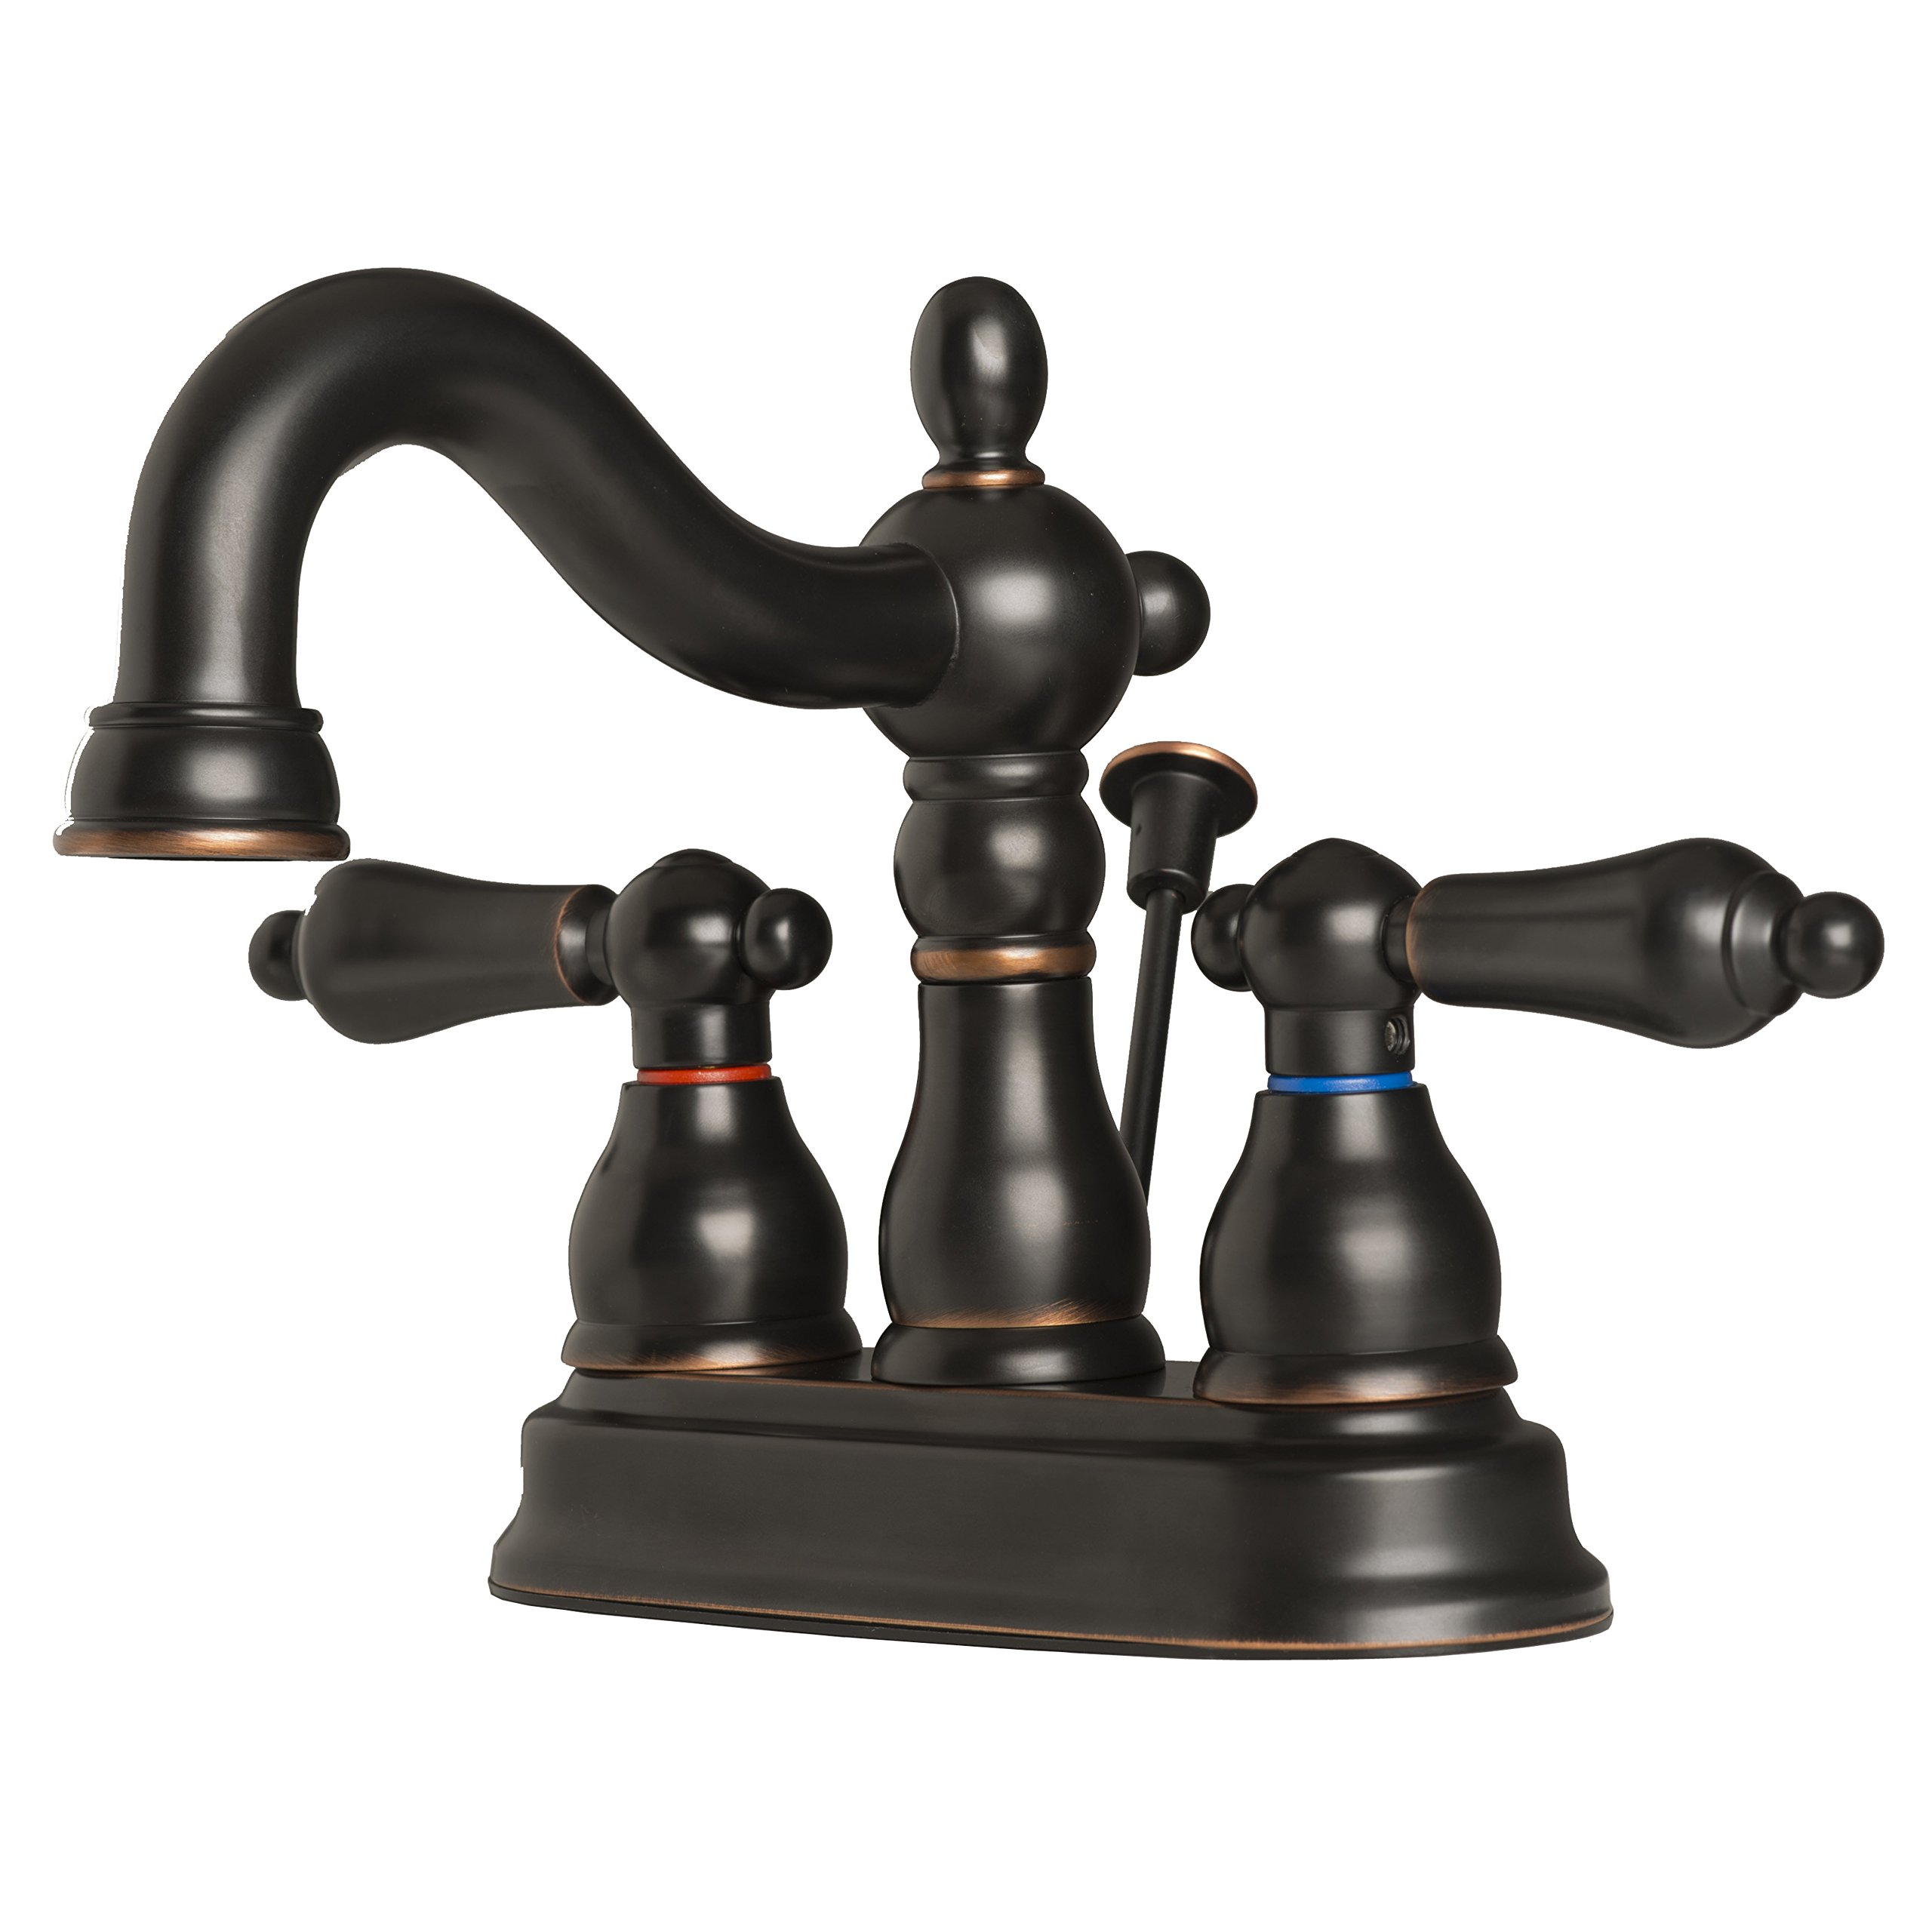 Builders Shoppe 2026TB Two Handle Centerset Lavatory Faucet with Pop-Up Drain Oil Rubbed Bronze Finish by Builders Shoppe